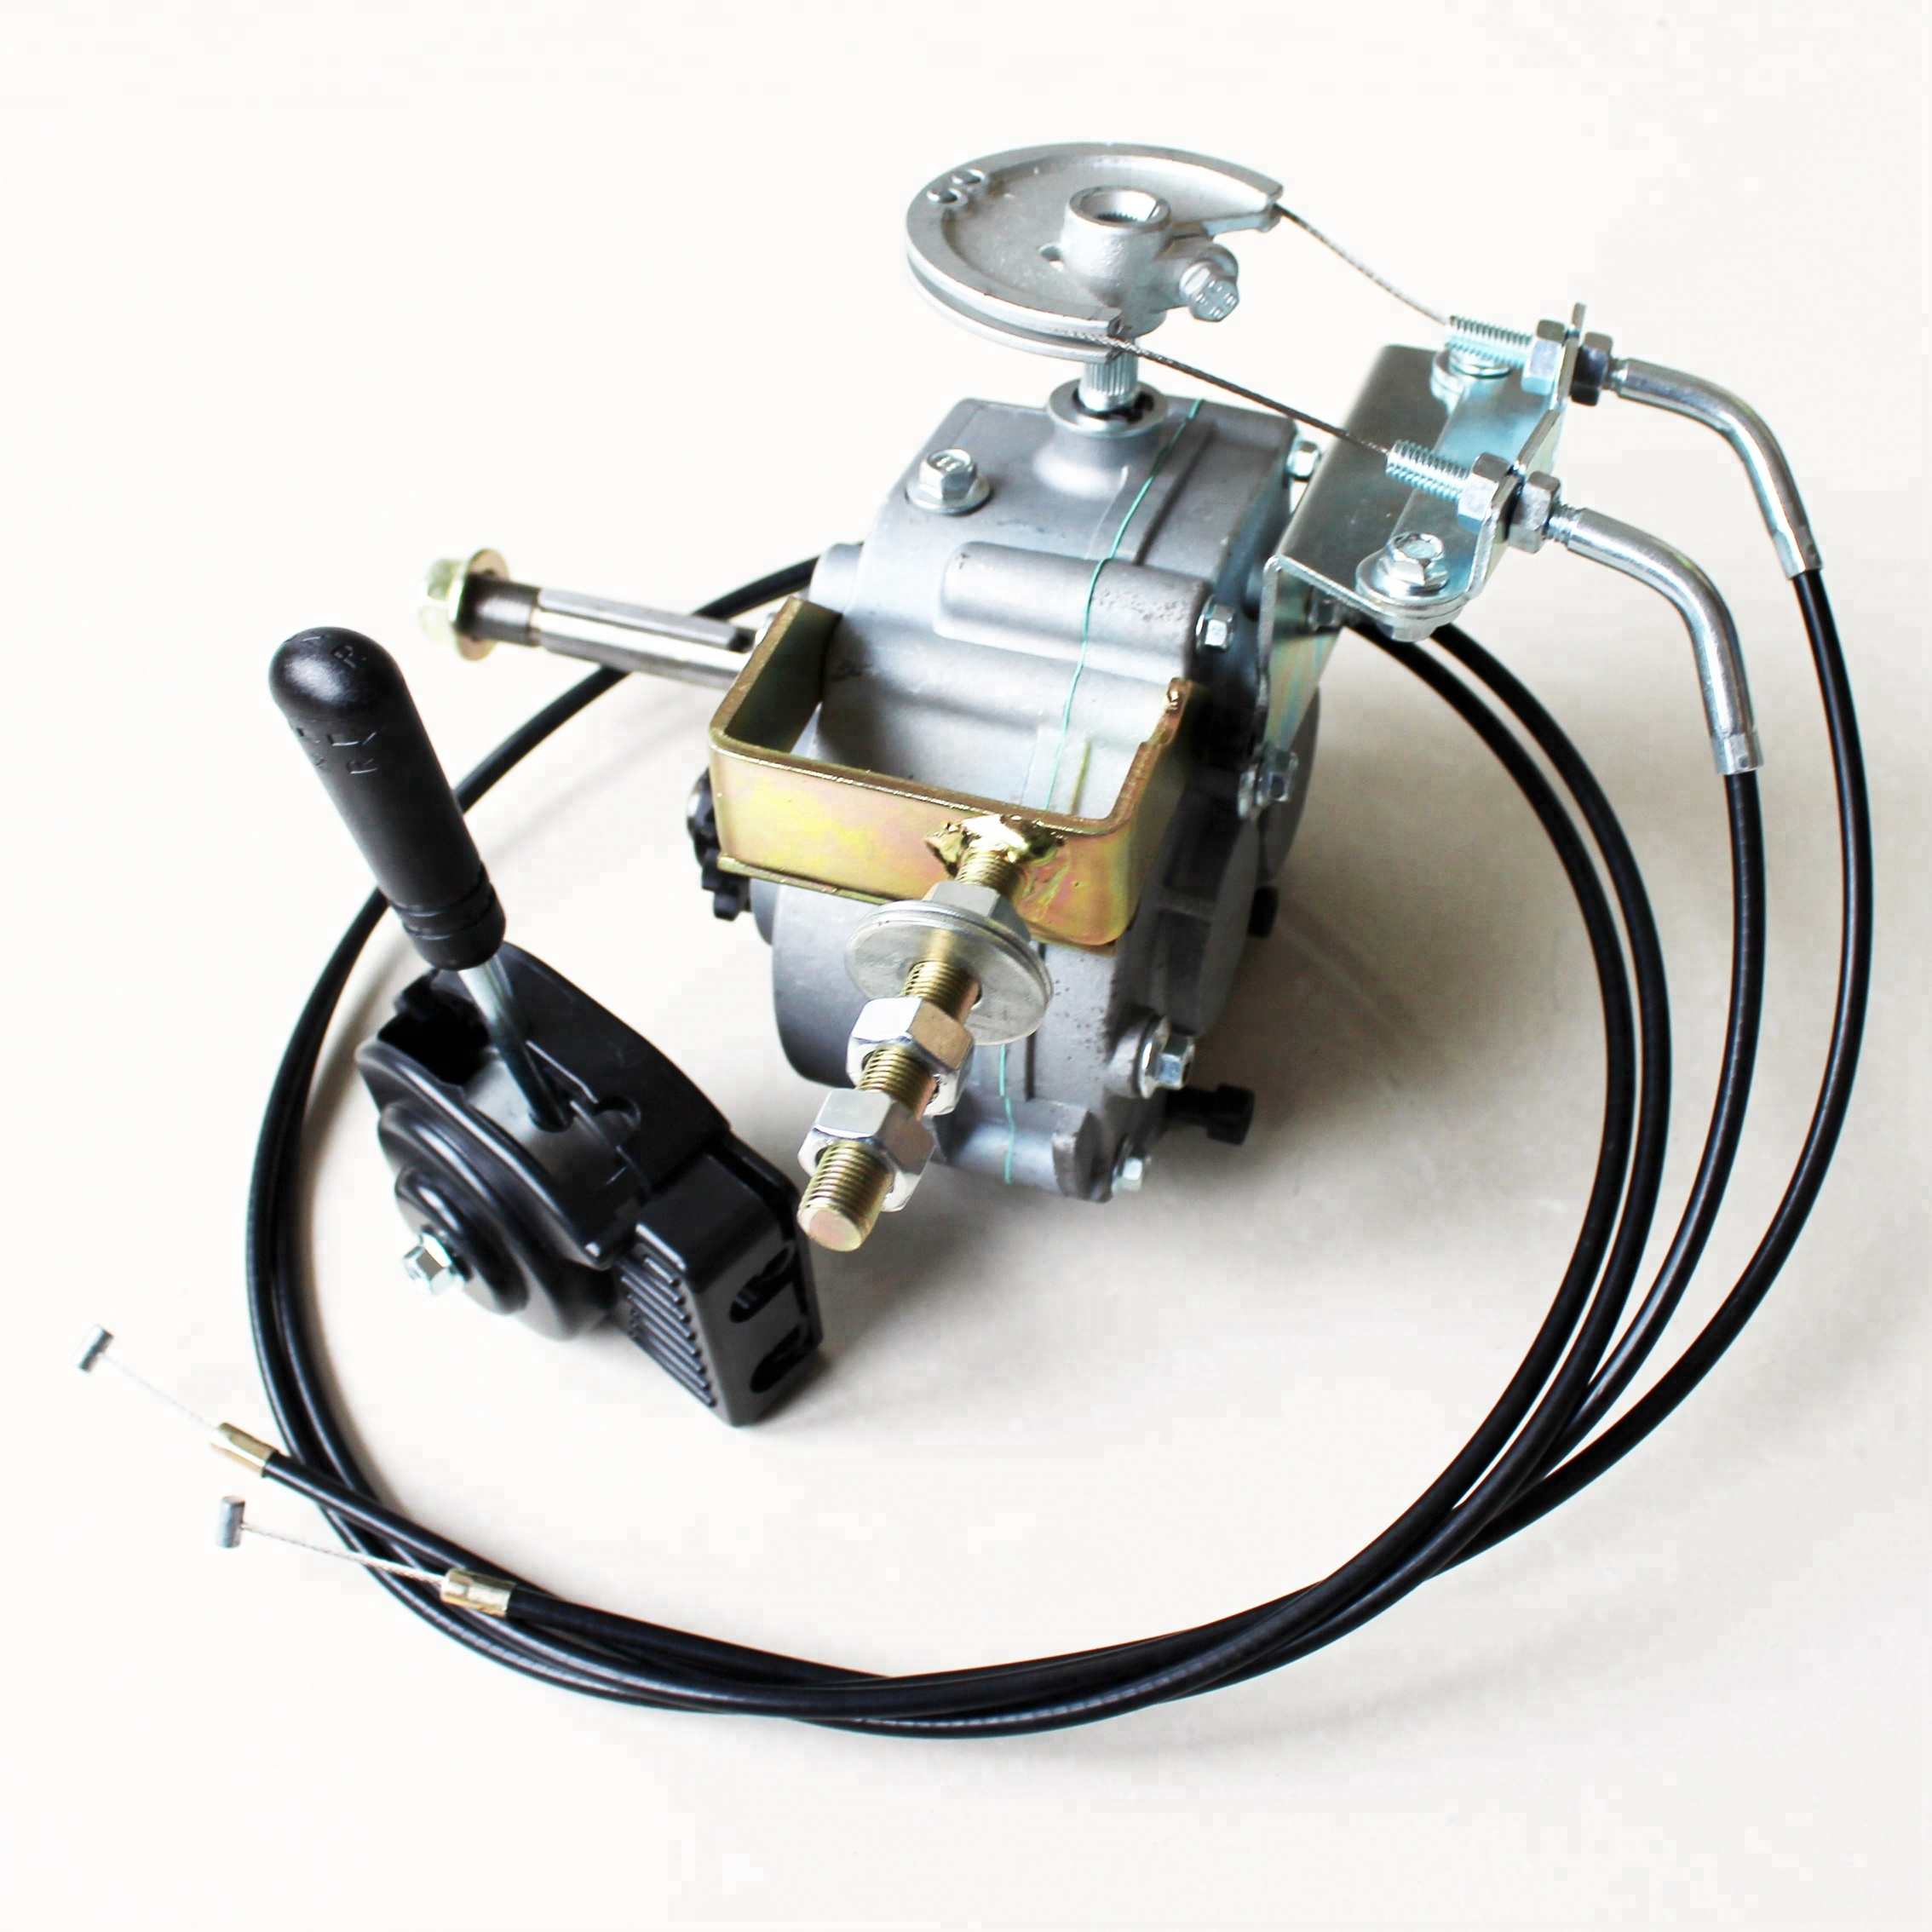 Go Kart Forward Reverse Gear Box For 13hp Engine 40/41 10t Or 12t - Buy  Gear Box With Reverse,10t Sprocket Forward Reverse Gearbox,13hp Go Kart